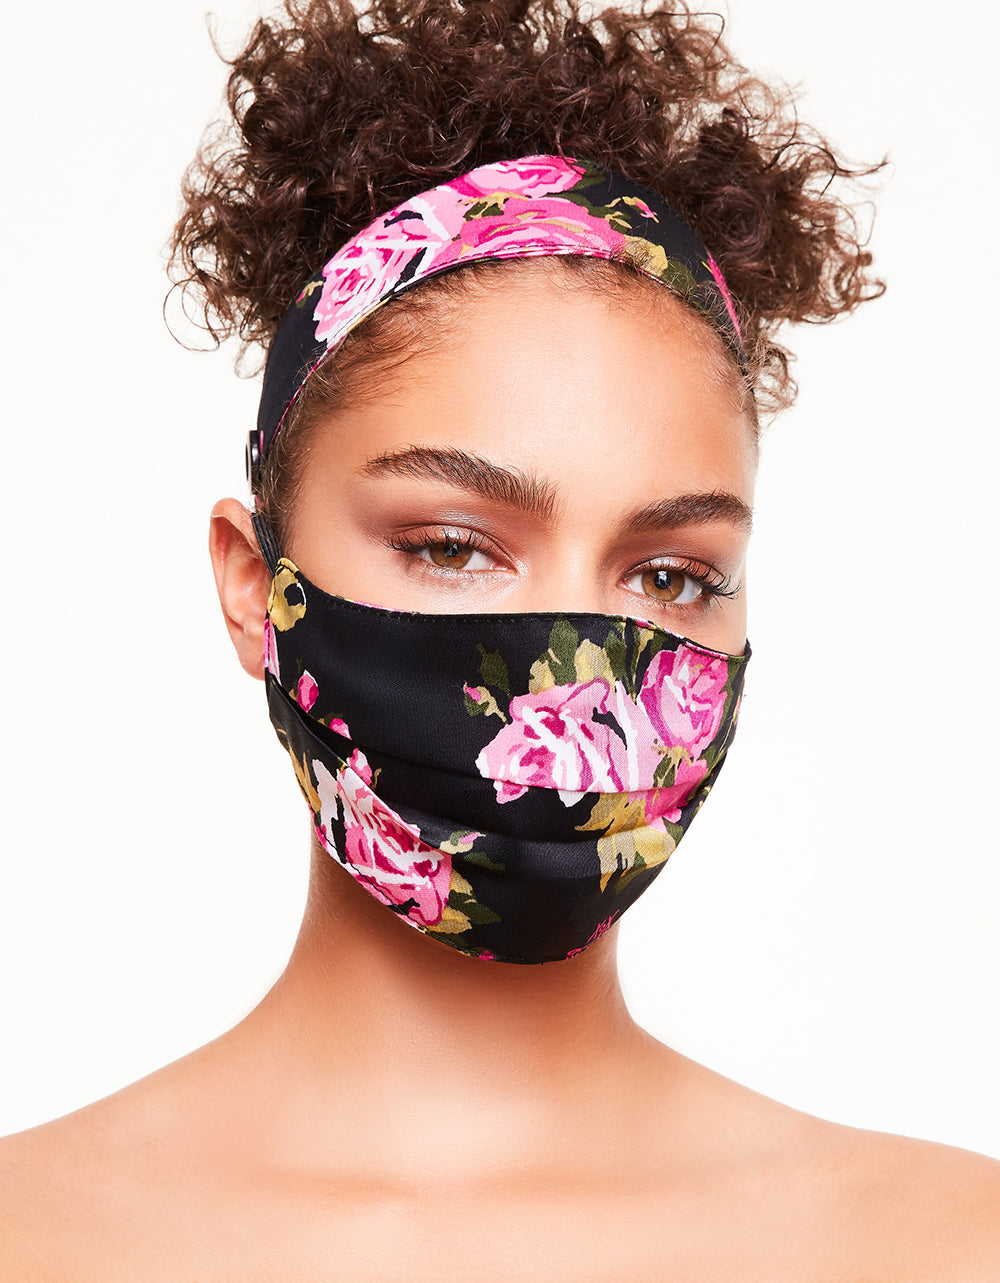 HEADBAND AND PRINTED FASHION FACE MASK SET BLACK MULTI - ACCESSORIES - Betsey Johnson